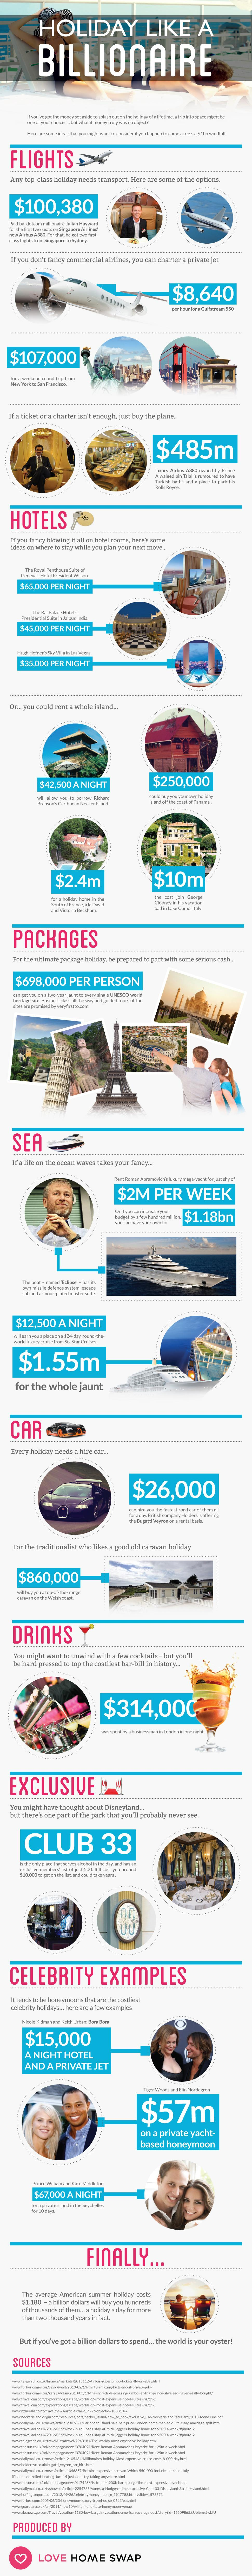 Holiday Like A Billionaire (Infographic)